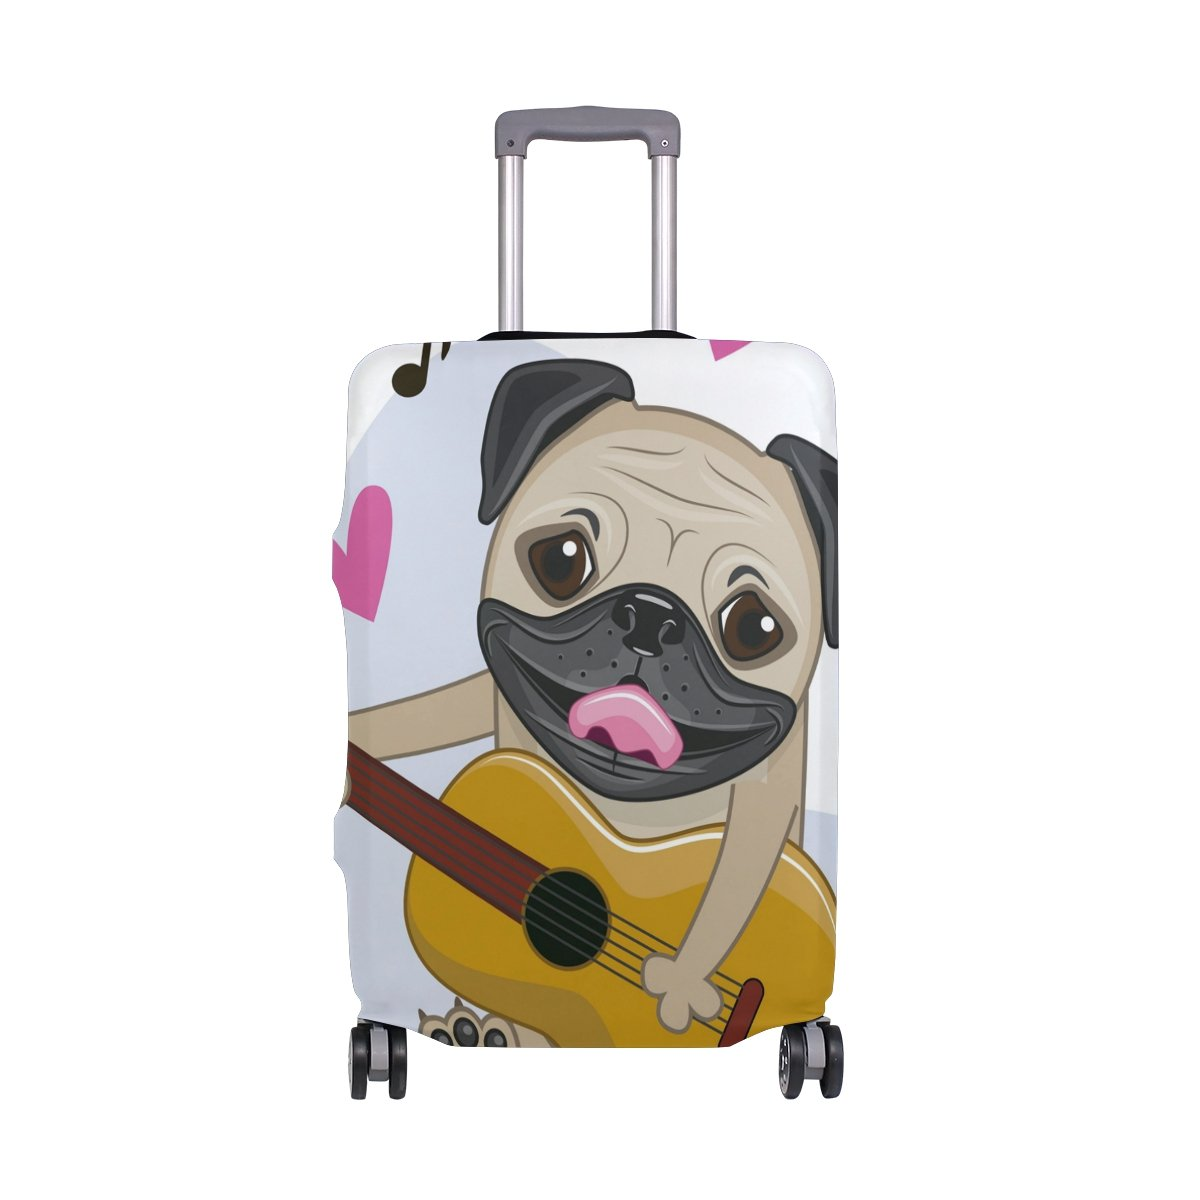 Cute Dog Puppy Music Hearts Love Suitcase Luggage Cover Protector for Travel Kids Men Women by ALAZA (Image #1)